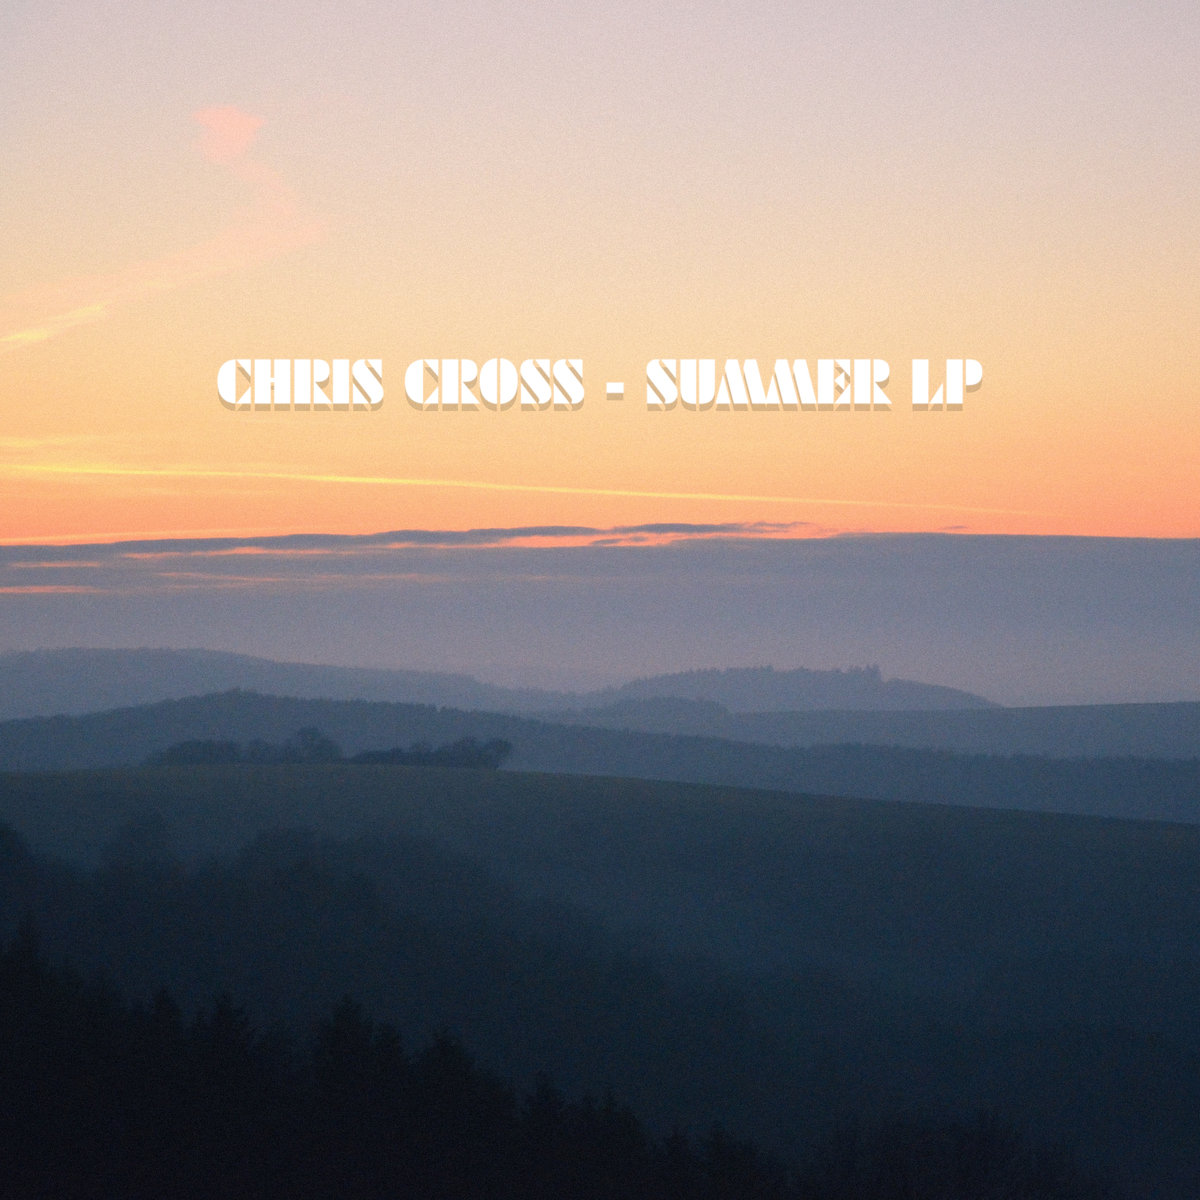 Die Summer LP von Chris Cross im Full Album Stream | Summervibes Galore